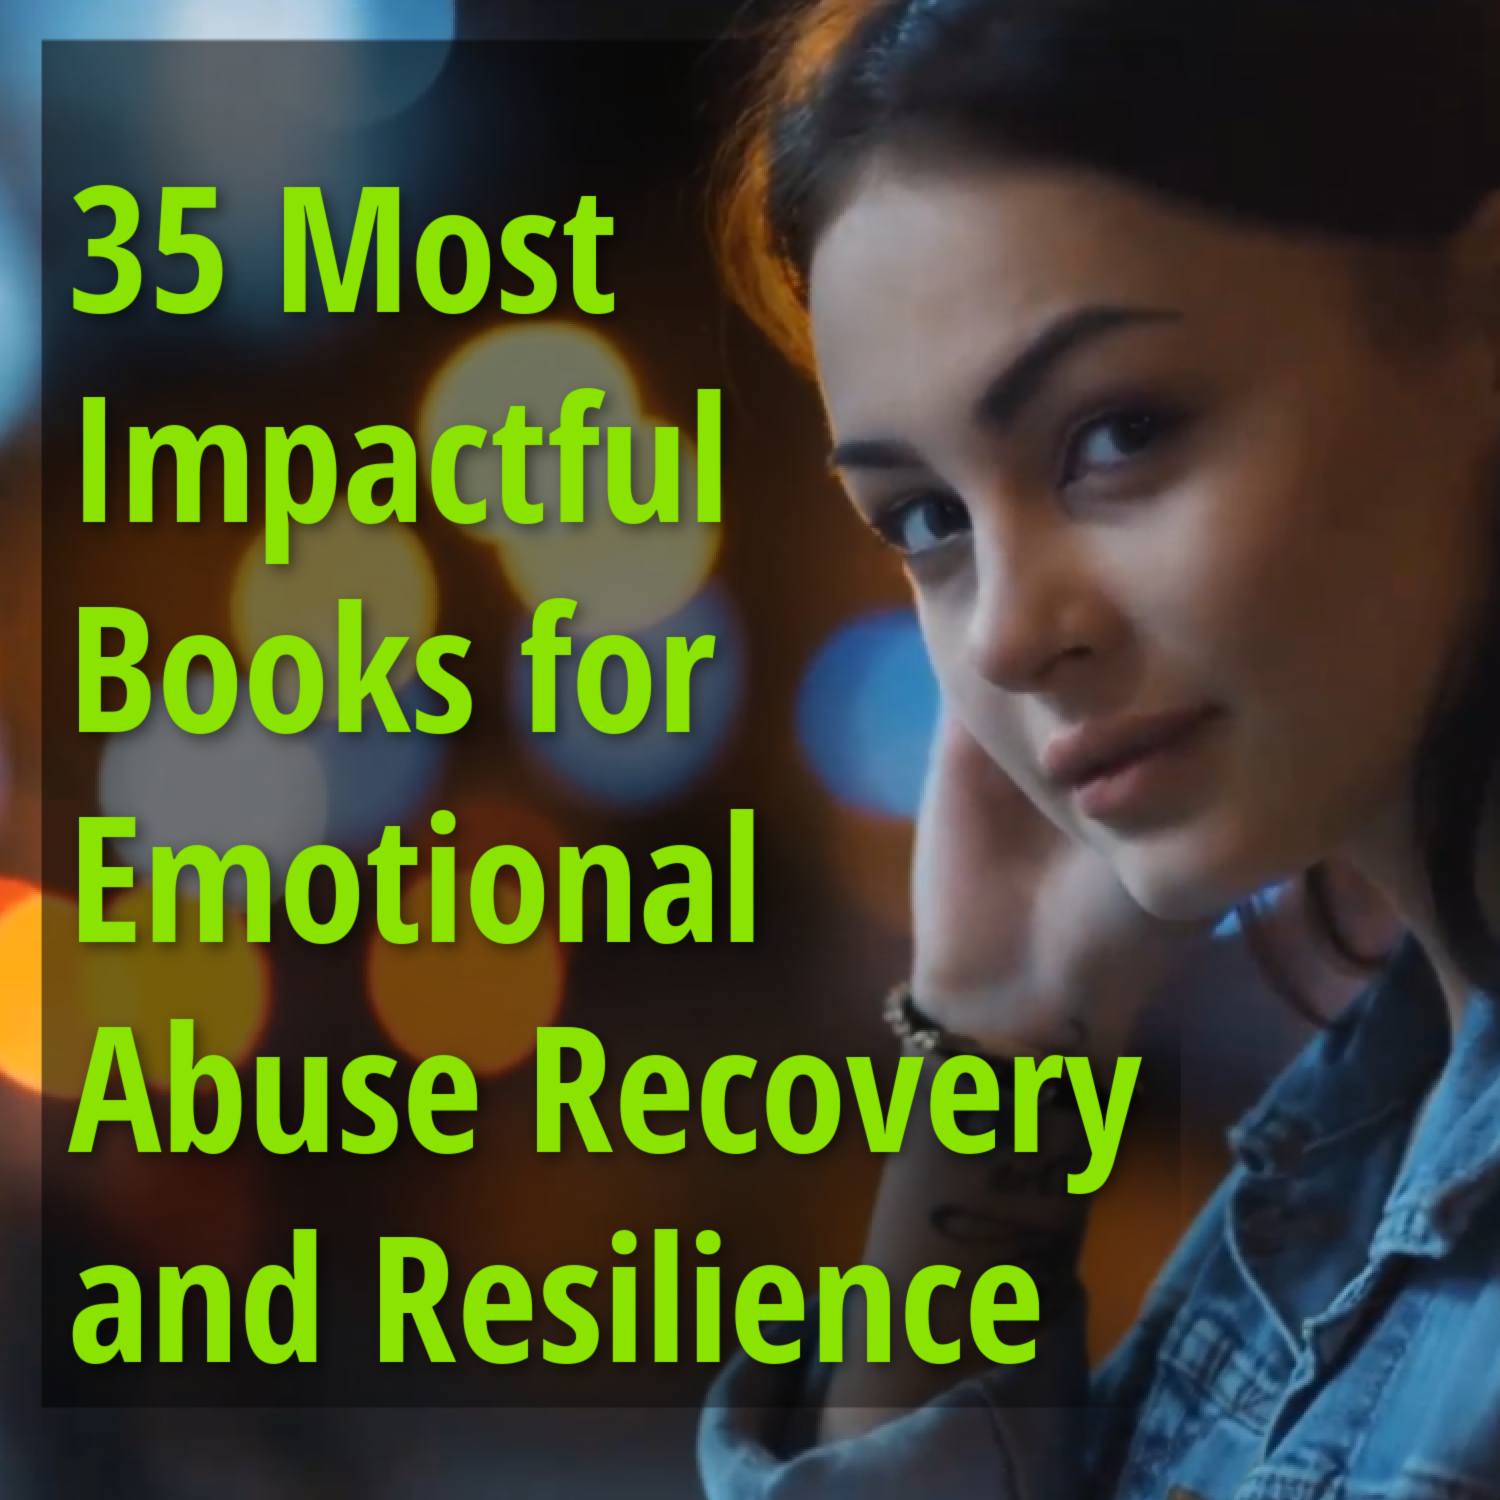 35 emotional abuse books